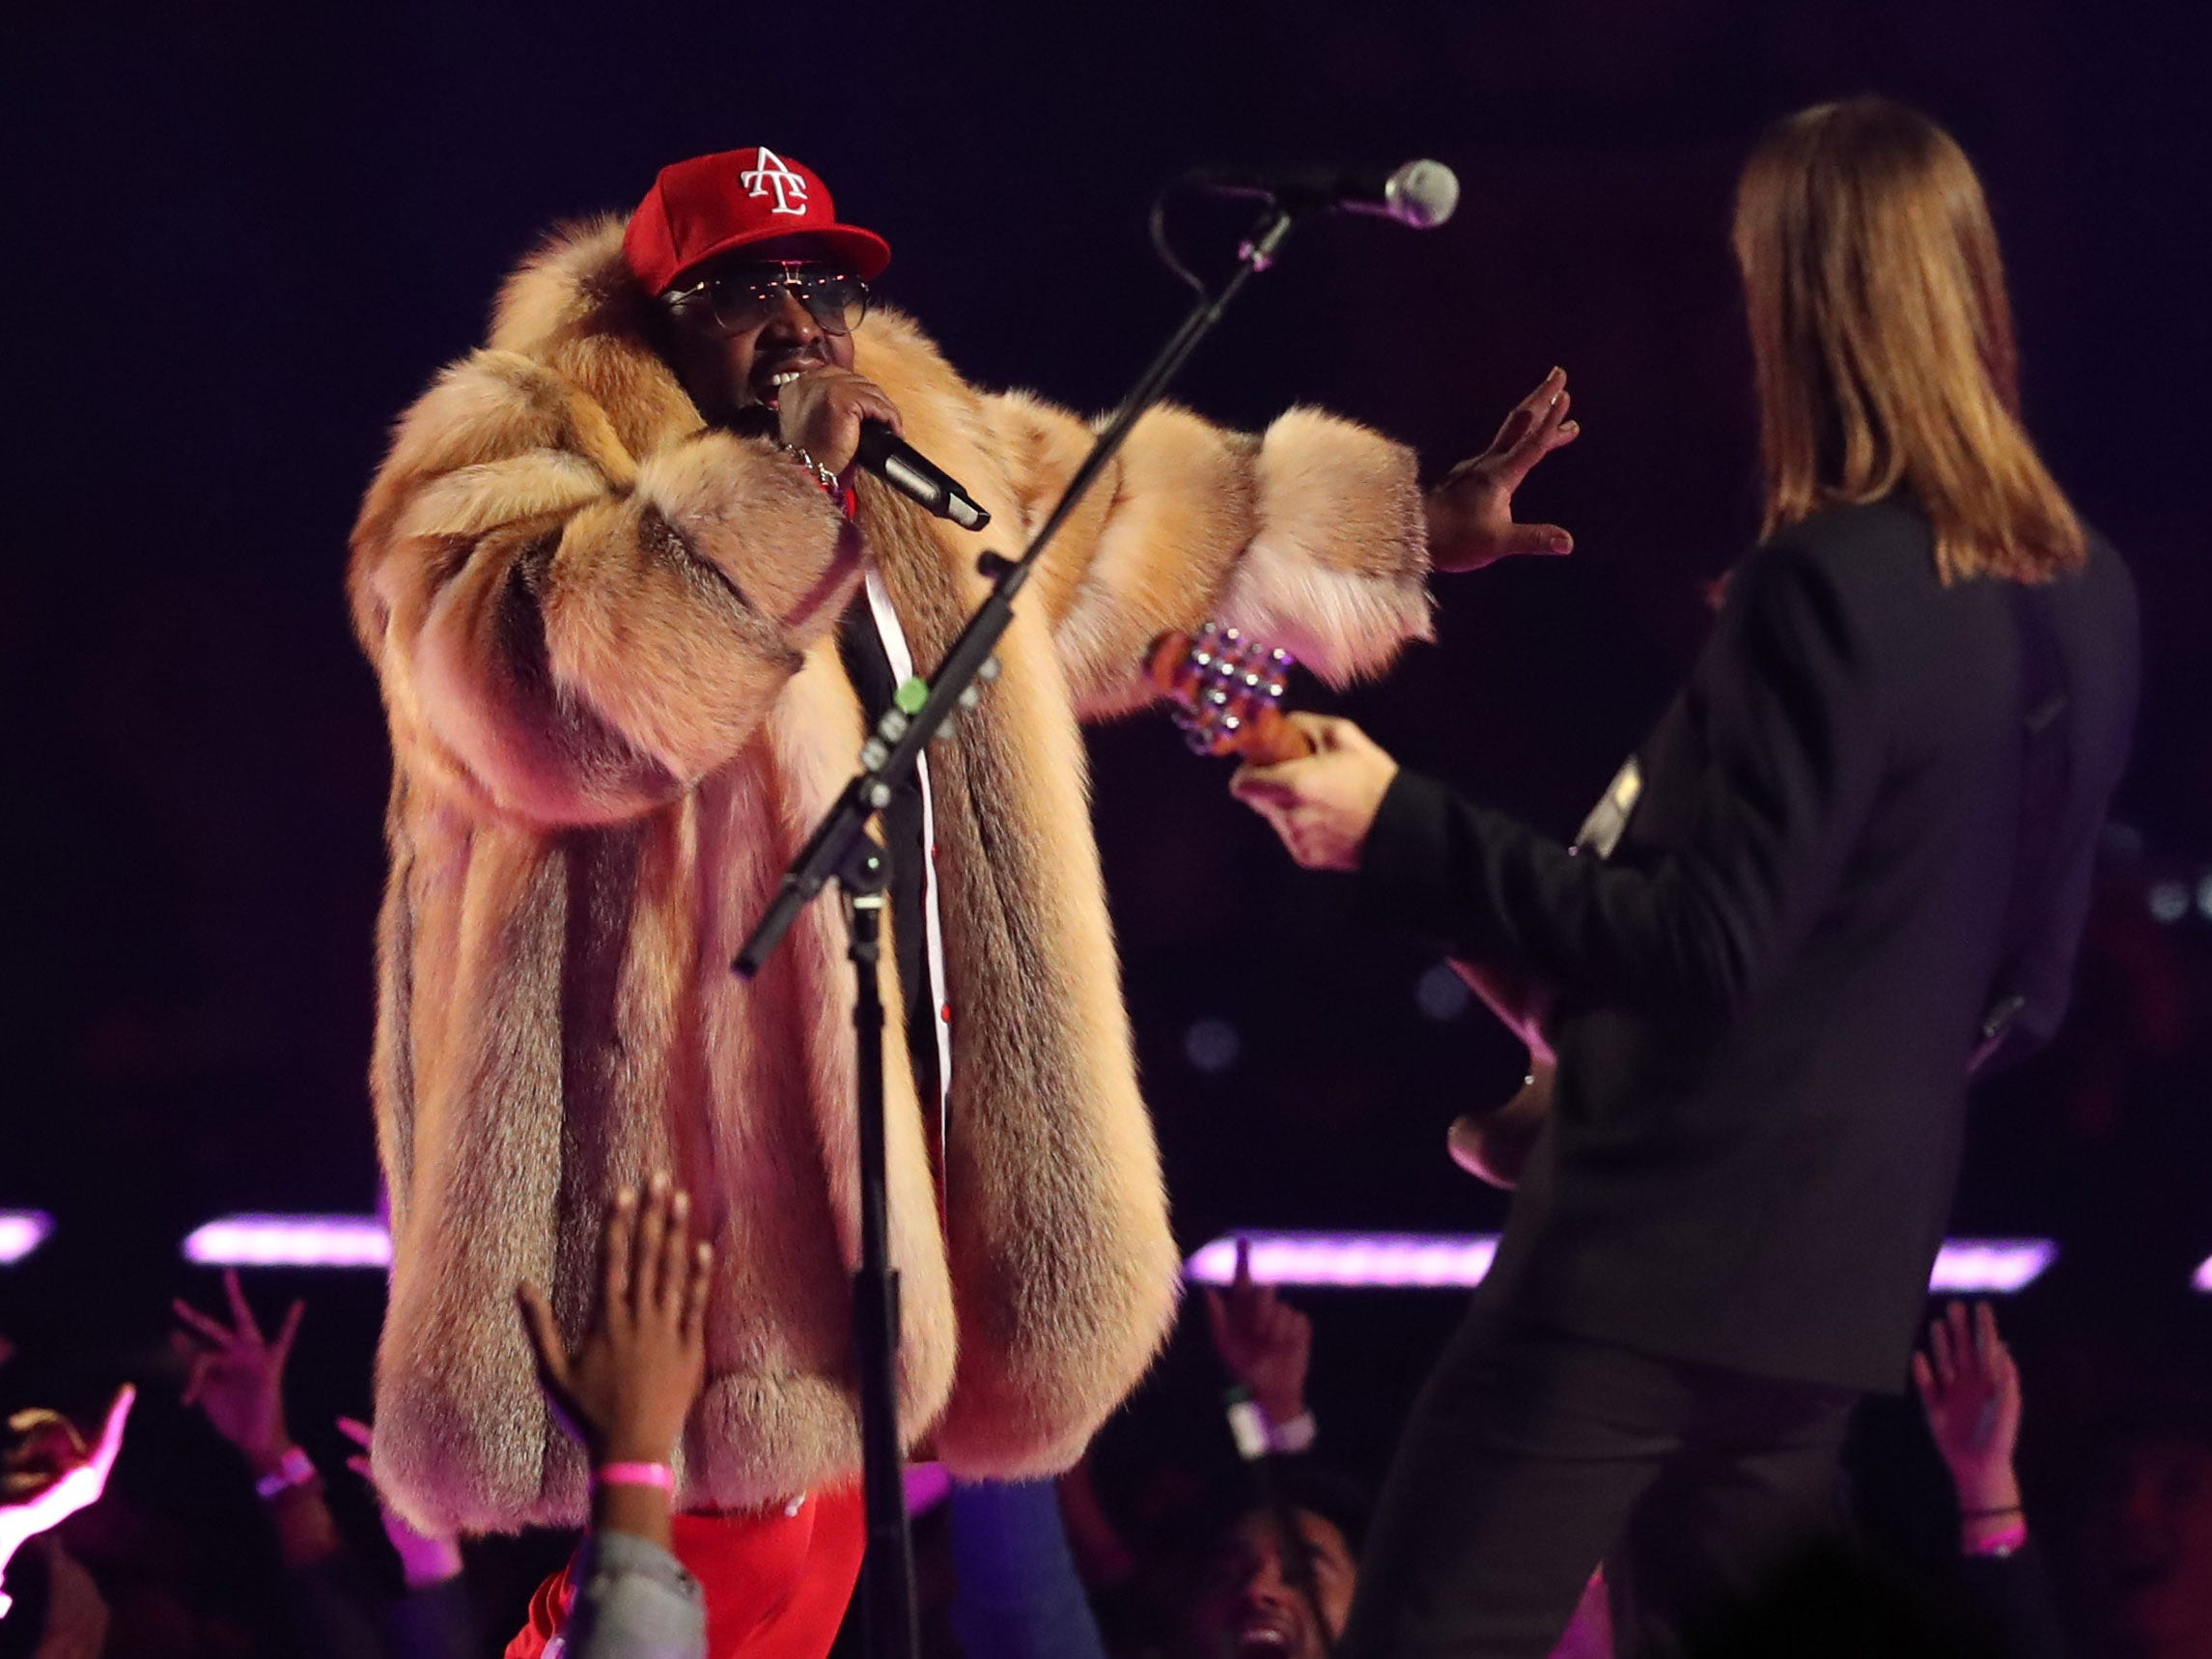 Recording artist Big Boi performs with Maoon 5 during the Super Bowl LIII halftime show at Mercedes-Benz Stadium in Atlanta.